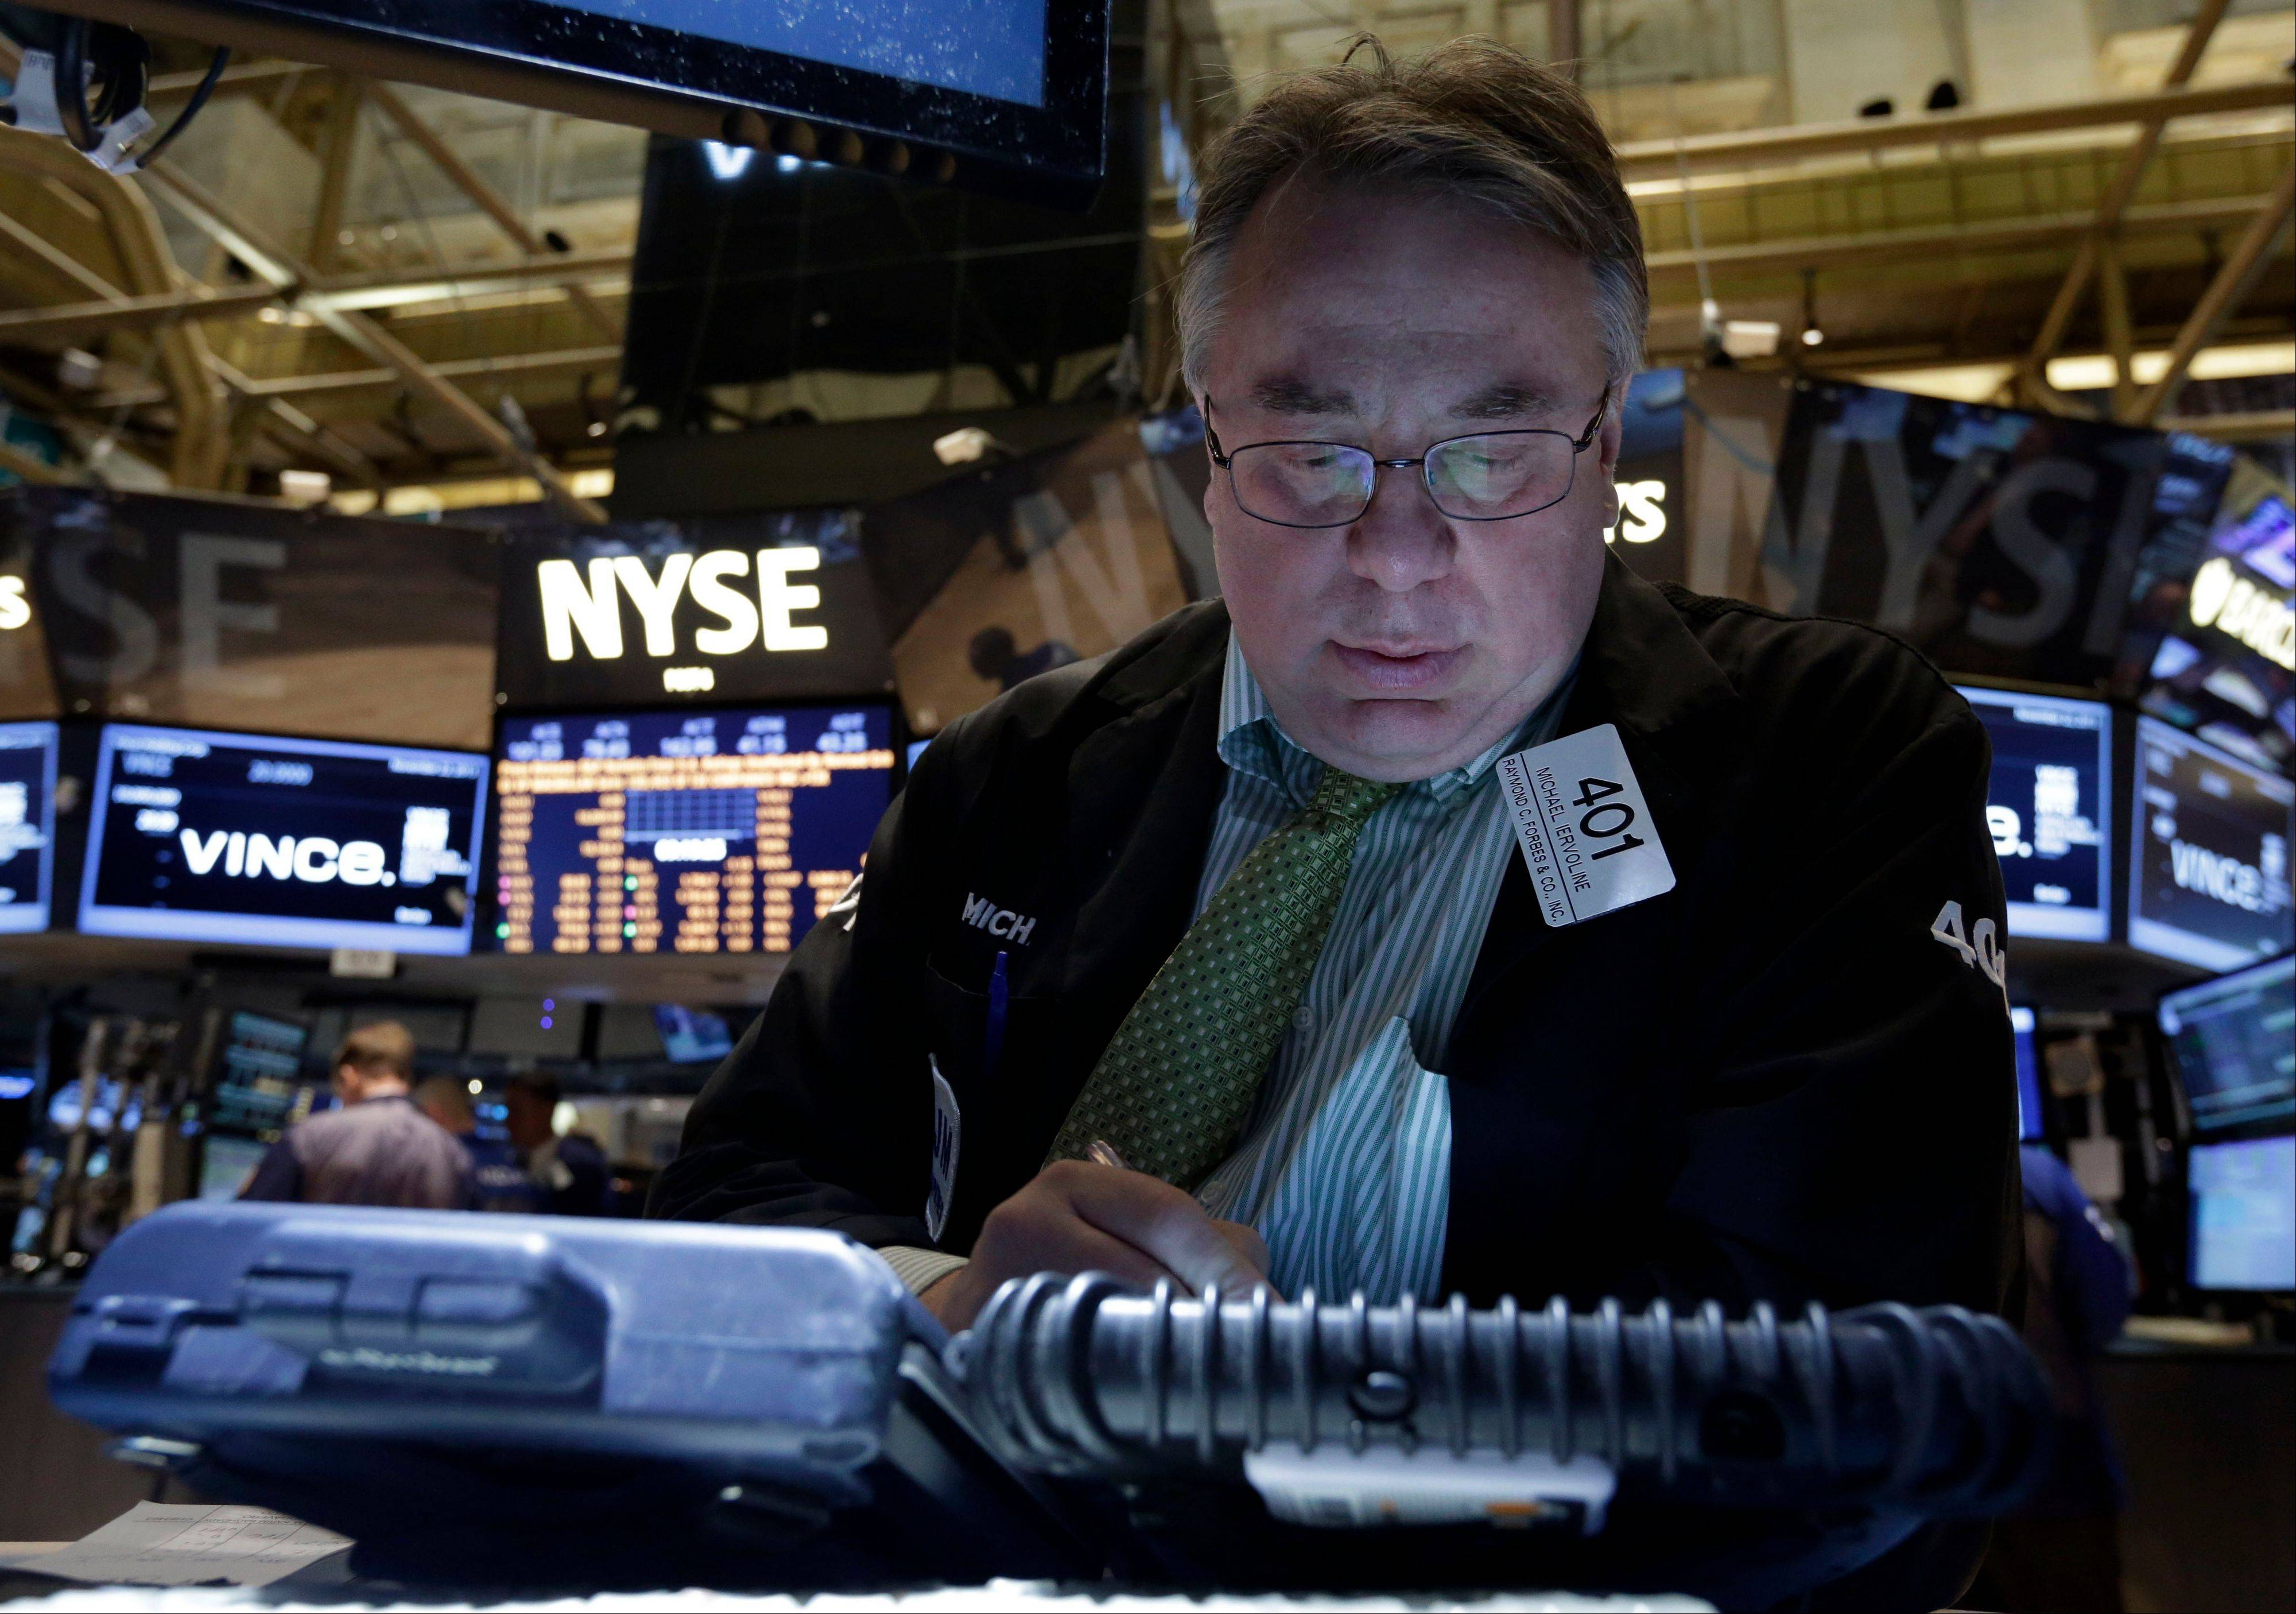 U.S. stocks declined for a third day Tuesday, as investors assessed reports on car and retail sales before economic data this week that may offer clues on when the Federal Reserve will reduce stimulus.